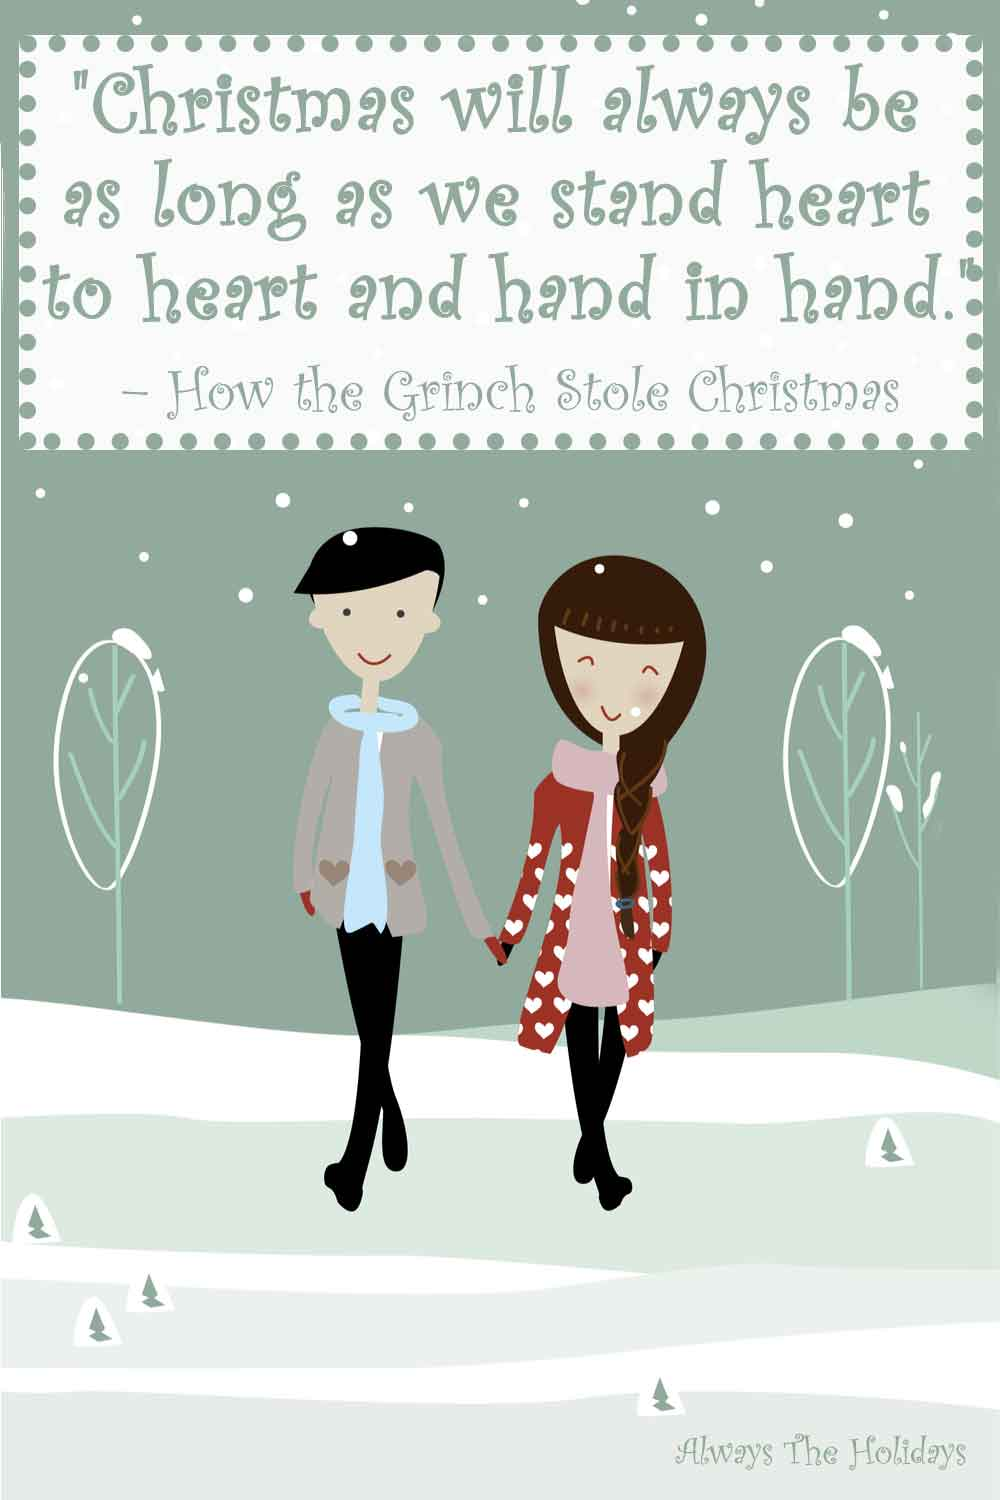 A cartoon couple holding hands walking in the snow with a Christmas movie quote text overlay.